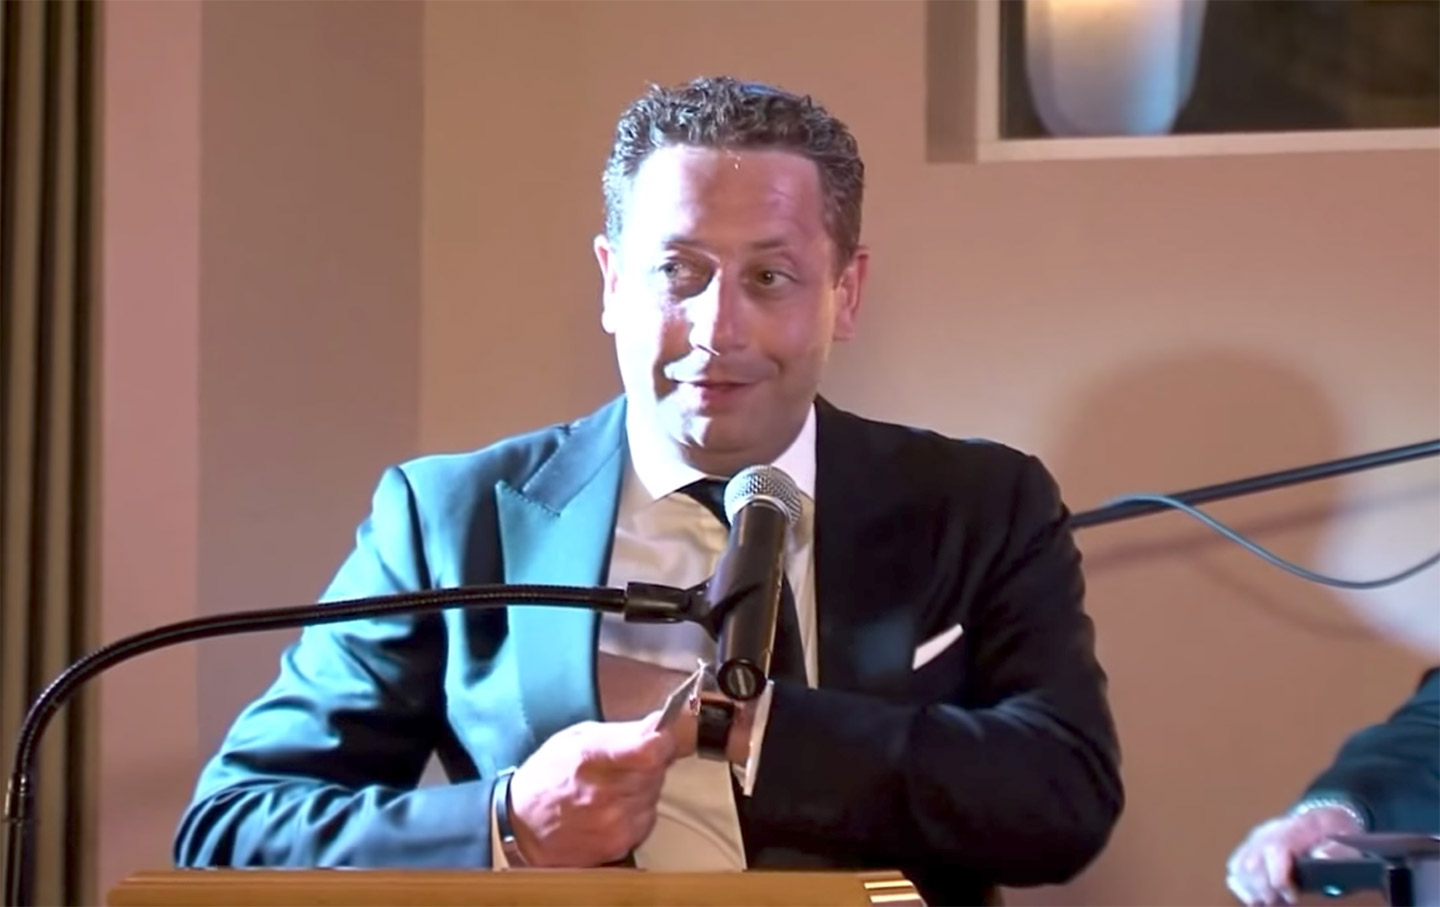 Felix Sater speaks at the Chabad of Port Washington in 2014.